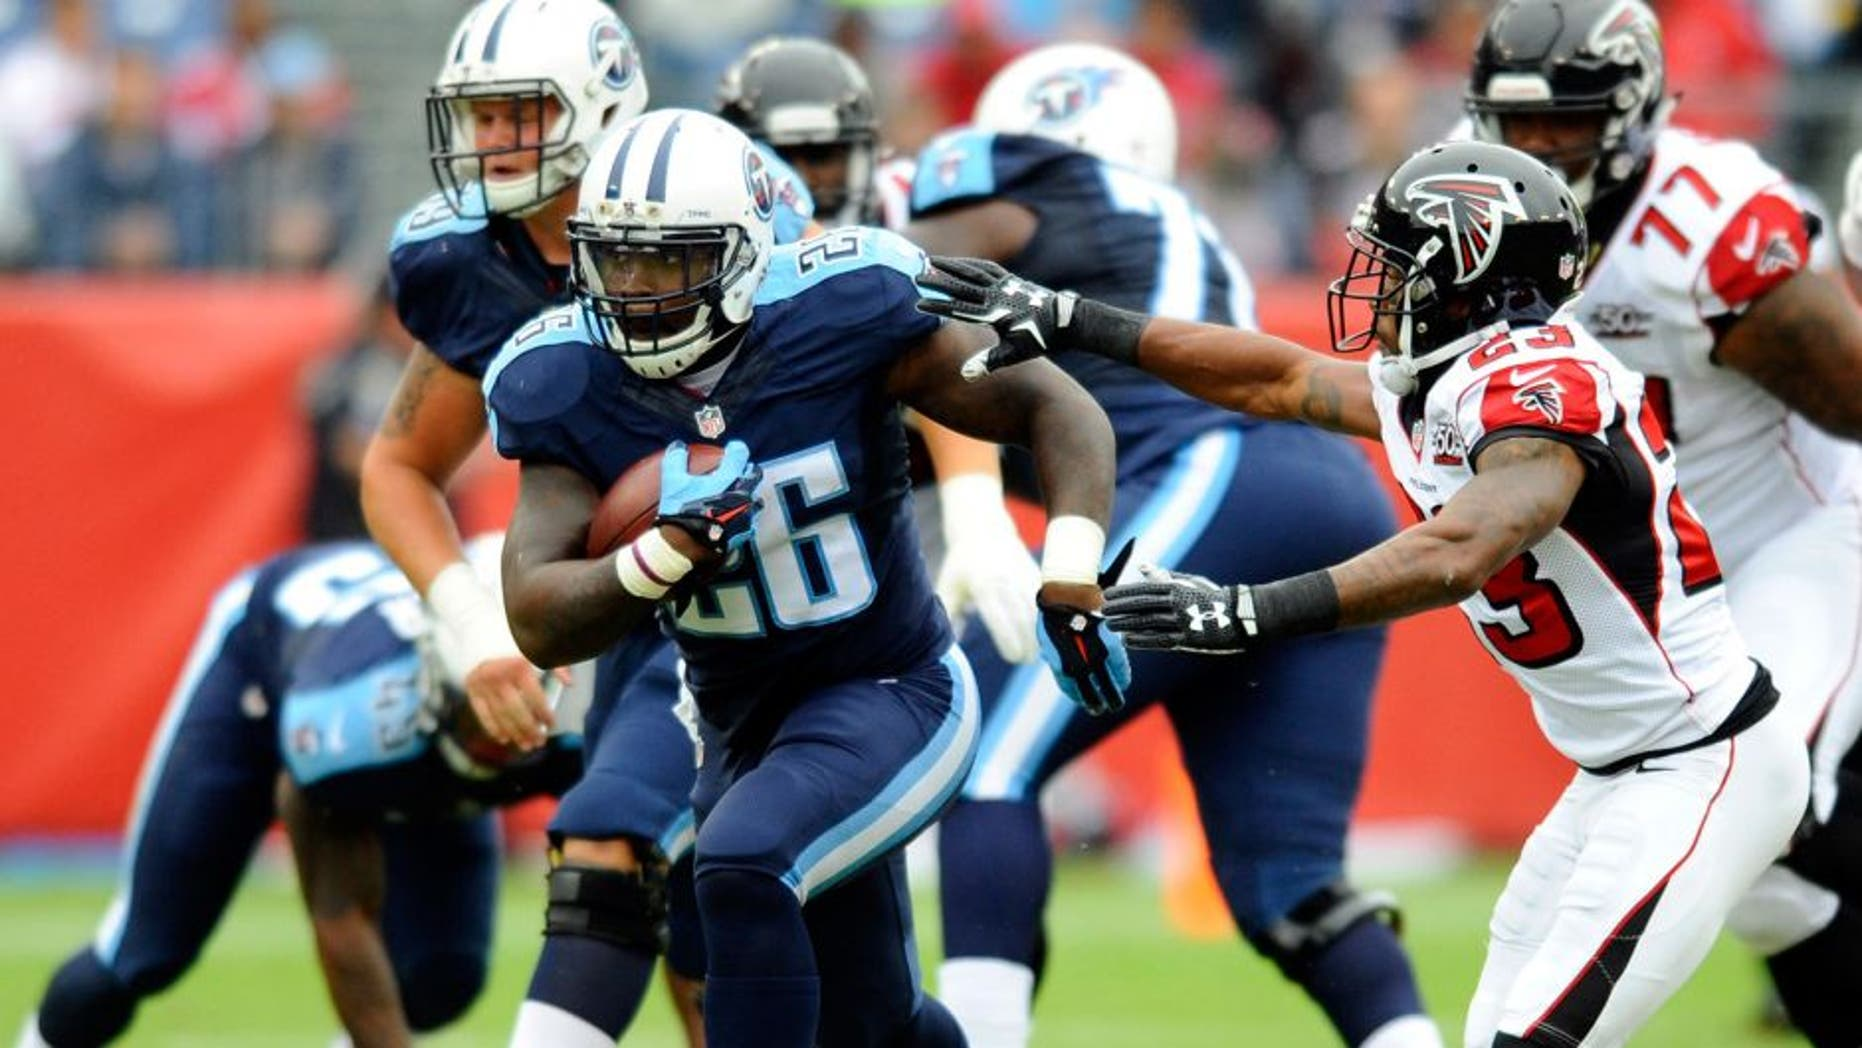 Oct 25, 2015; Nashville, TN, USA; Tennessee Titans running back Antonio Andrews (26) runs for a first down during the first half against the Atlanta Falcons at Nissan Stadium. Mandatory Credit: Christopher Hanewinckel-USA TODAY Sports